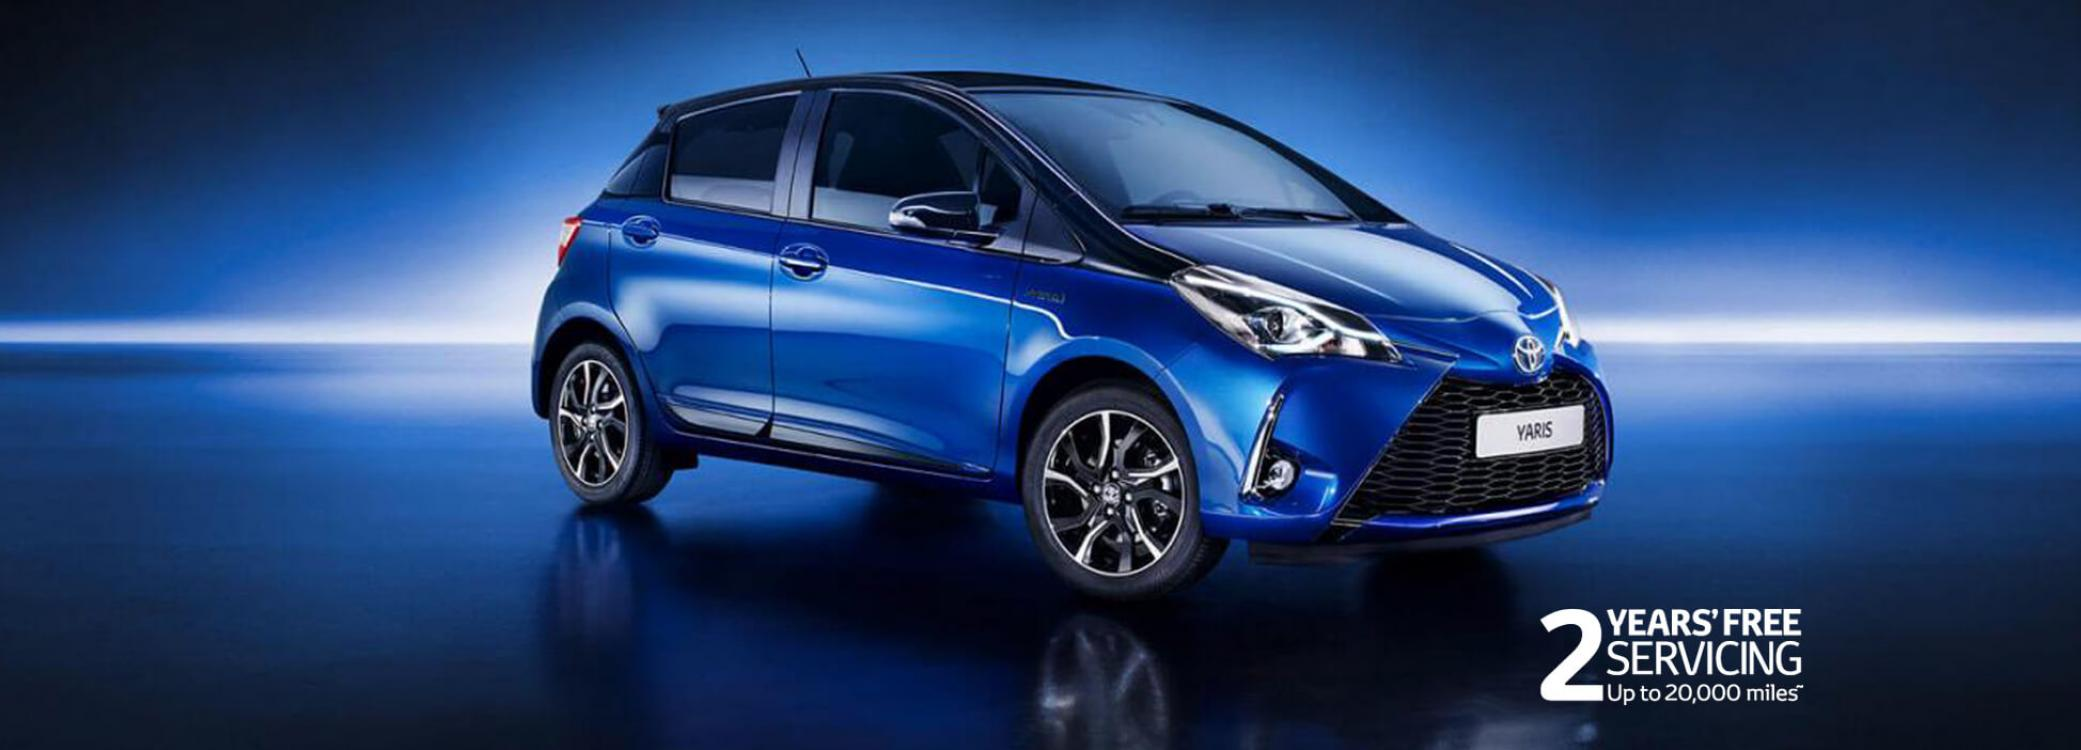 new yaris hybrid models features howards toyota. Black Bedroom Furniture Sets. Home Design Ideas